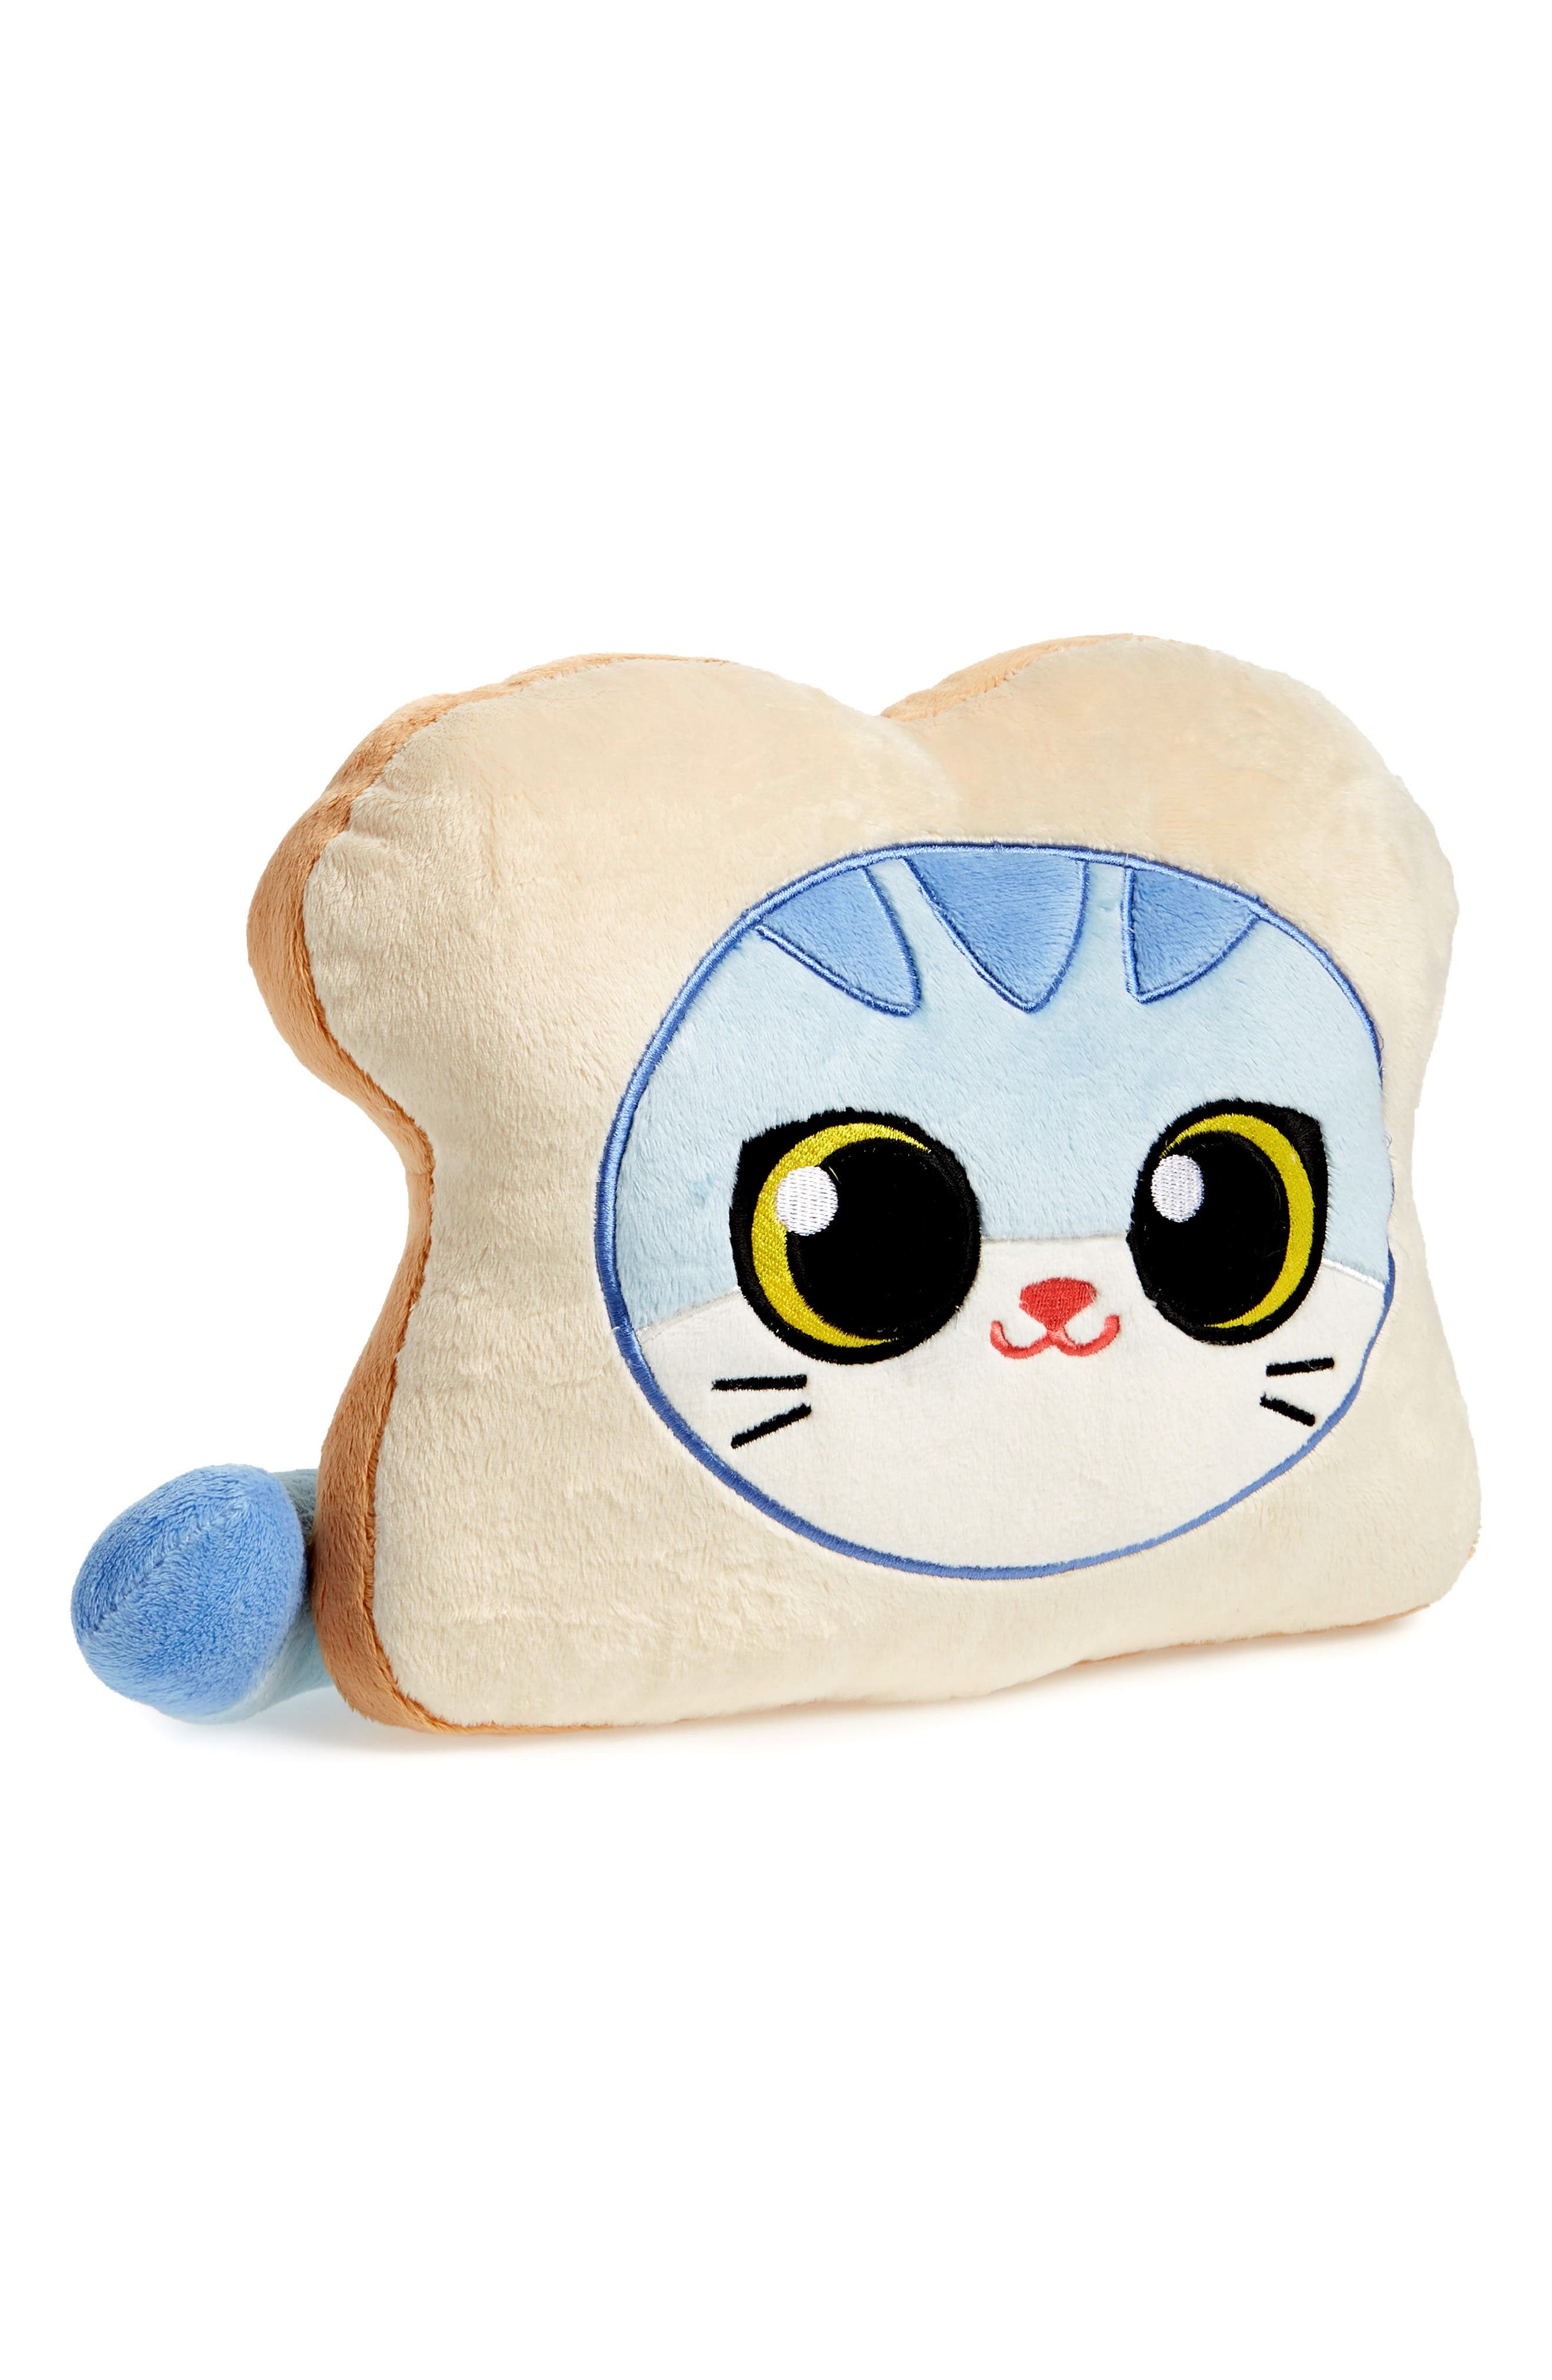 Cat Bread Stuffed Pillow,                         Main,                         color, 270